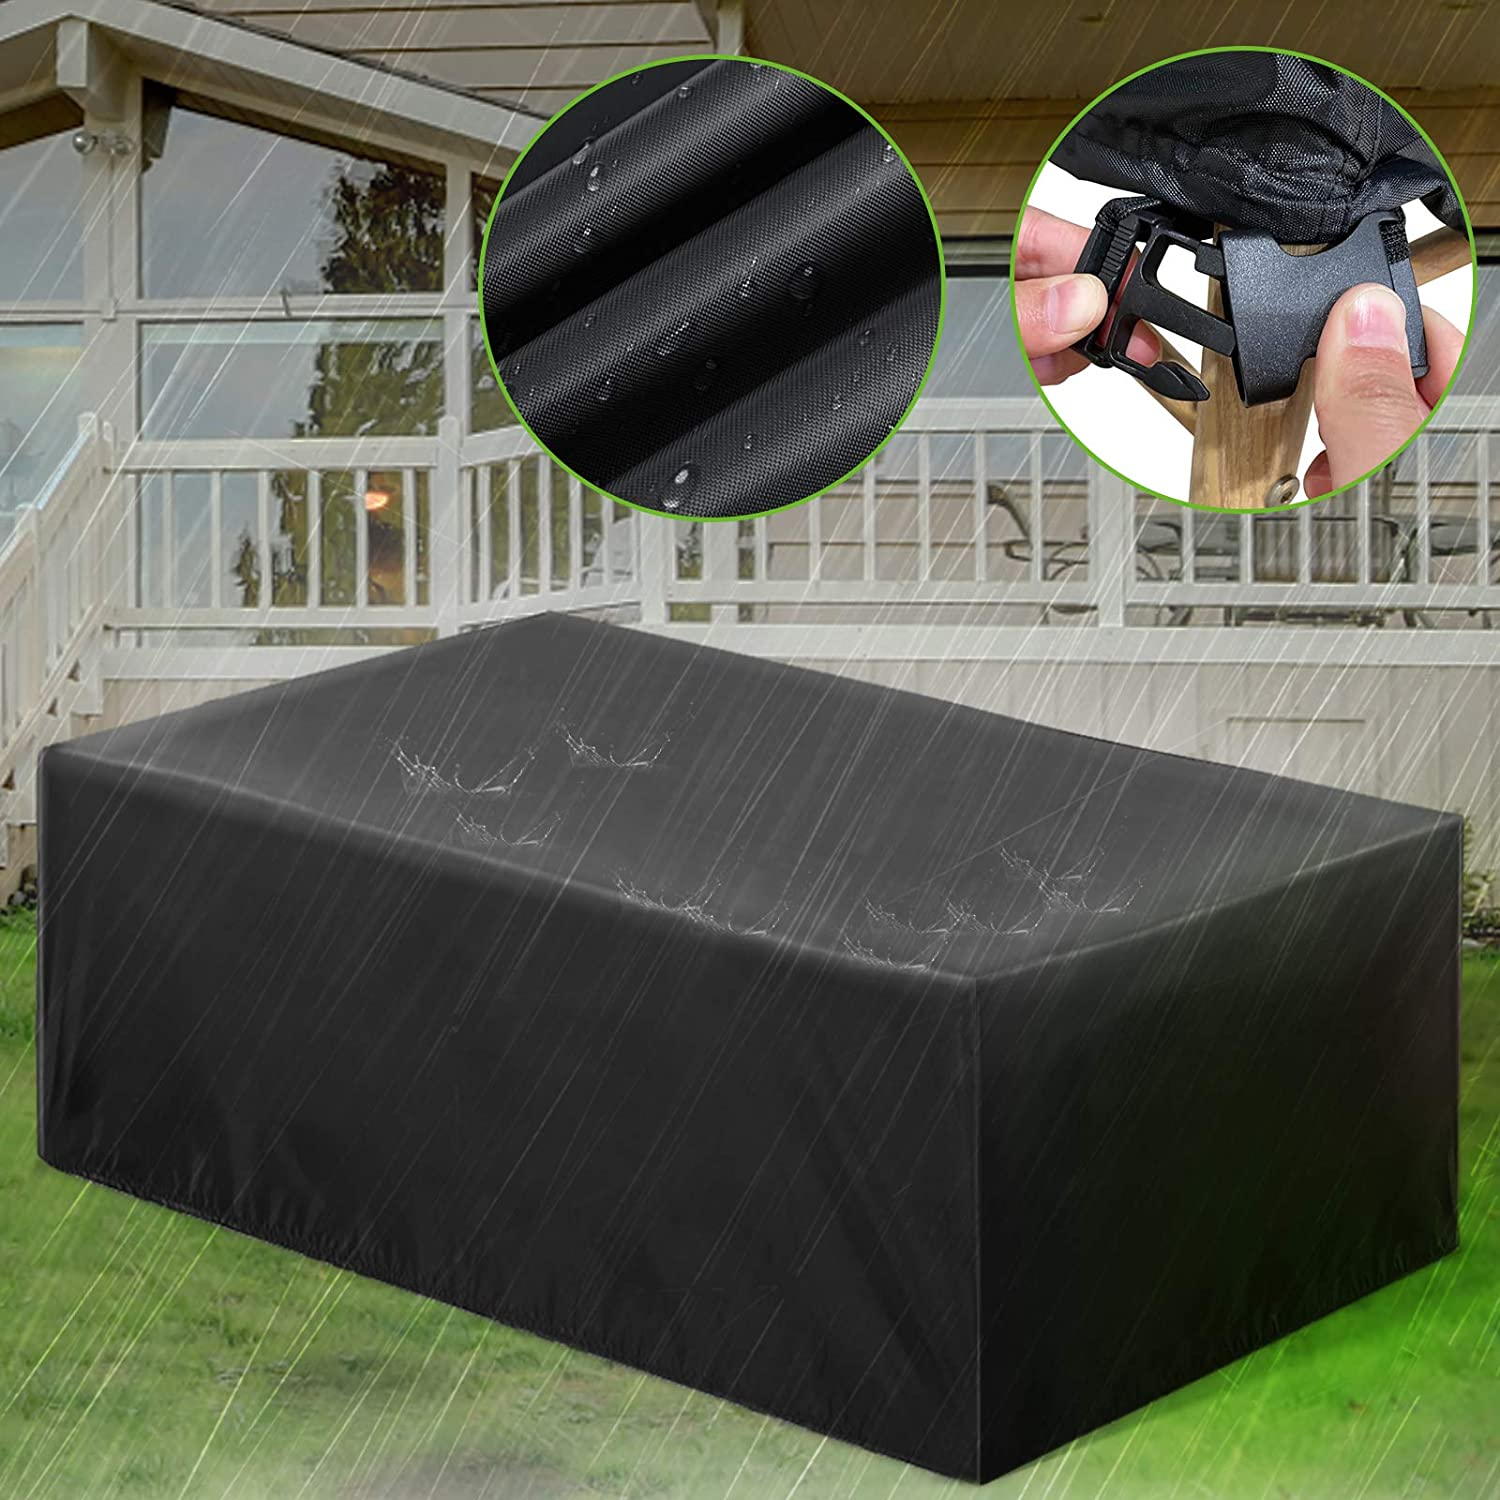 ESSORT Patio Furniture Covers, Extra Large Outdoor Furniture Set Covers 124